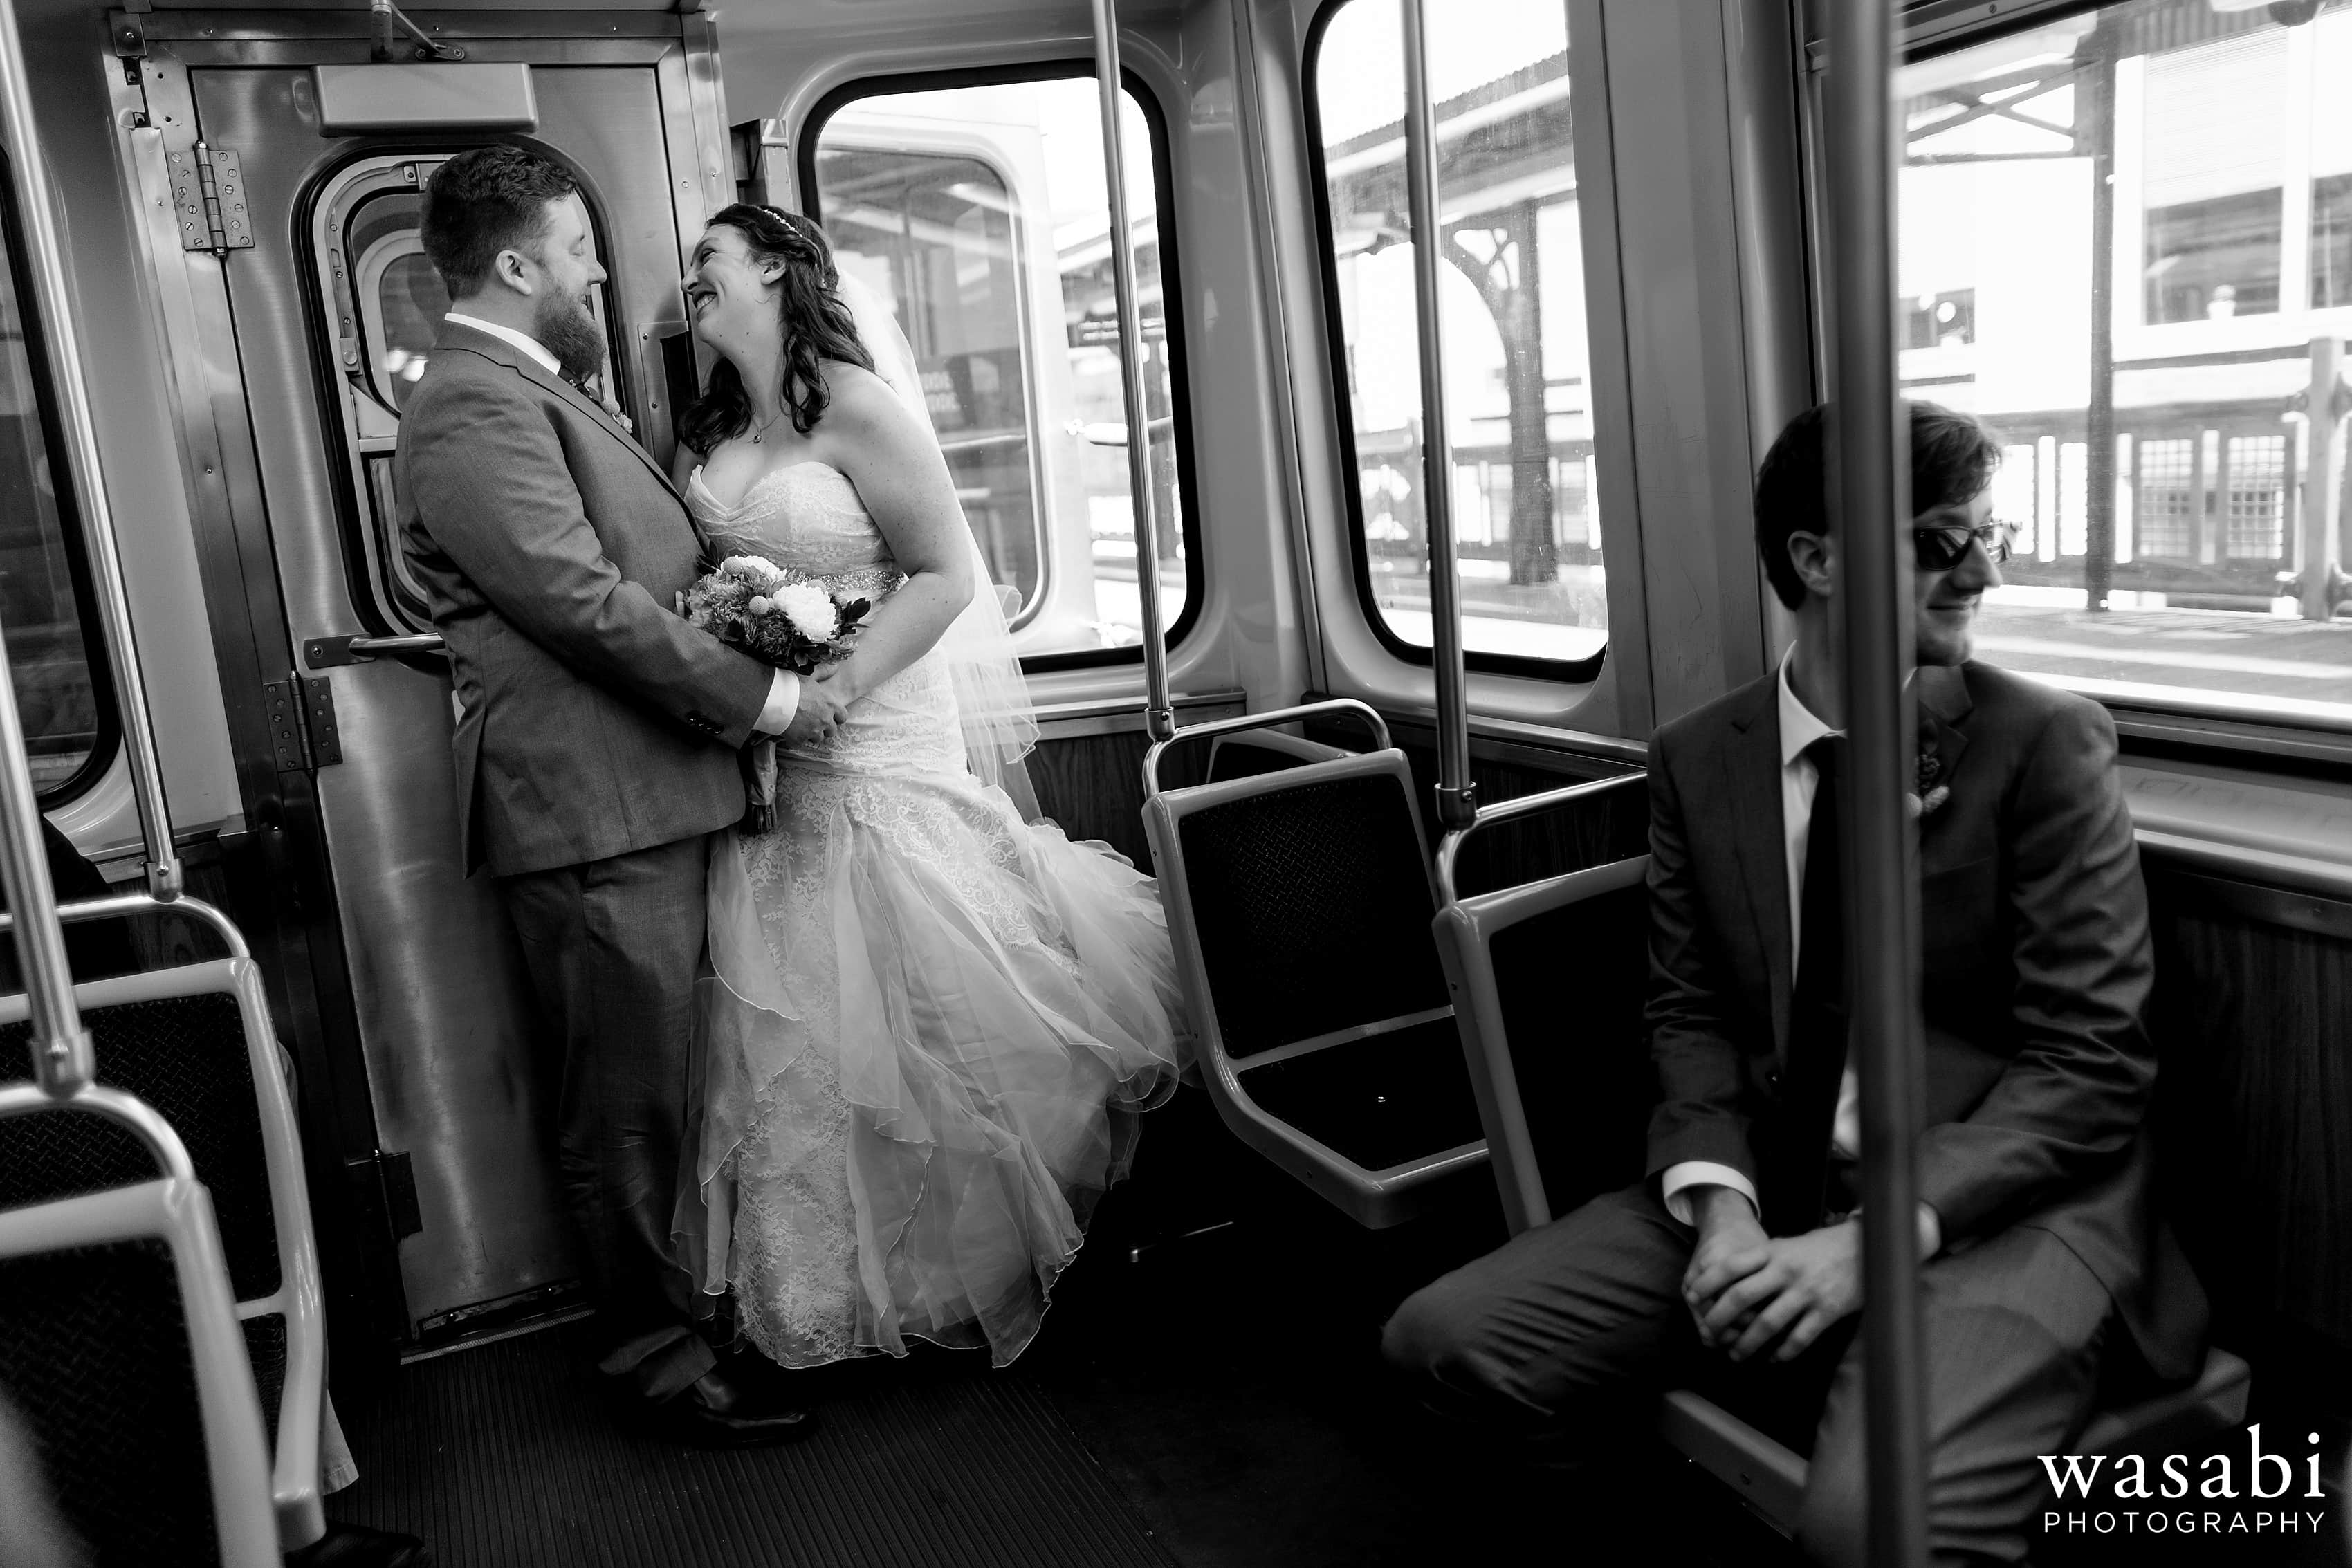 A bride and groom ride the red line El train to their wedding at Loft on Lake in Chicago